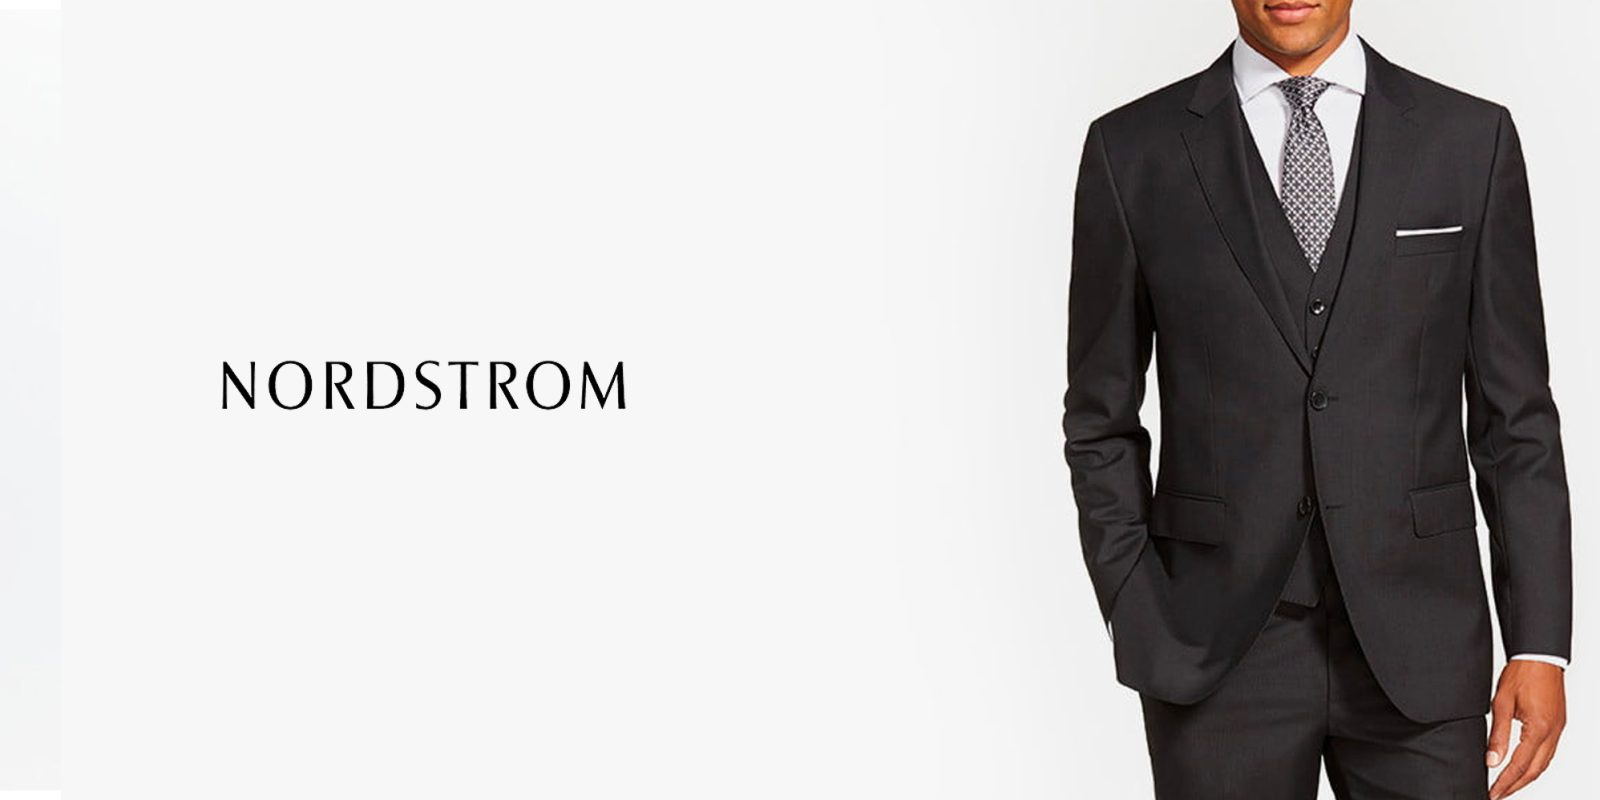 3a8e710927 Best men's fashion items from Nordstrom's Anniversary Sale - 9to5Toys